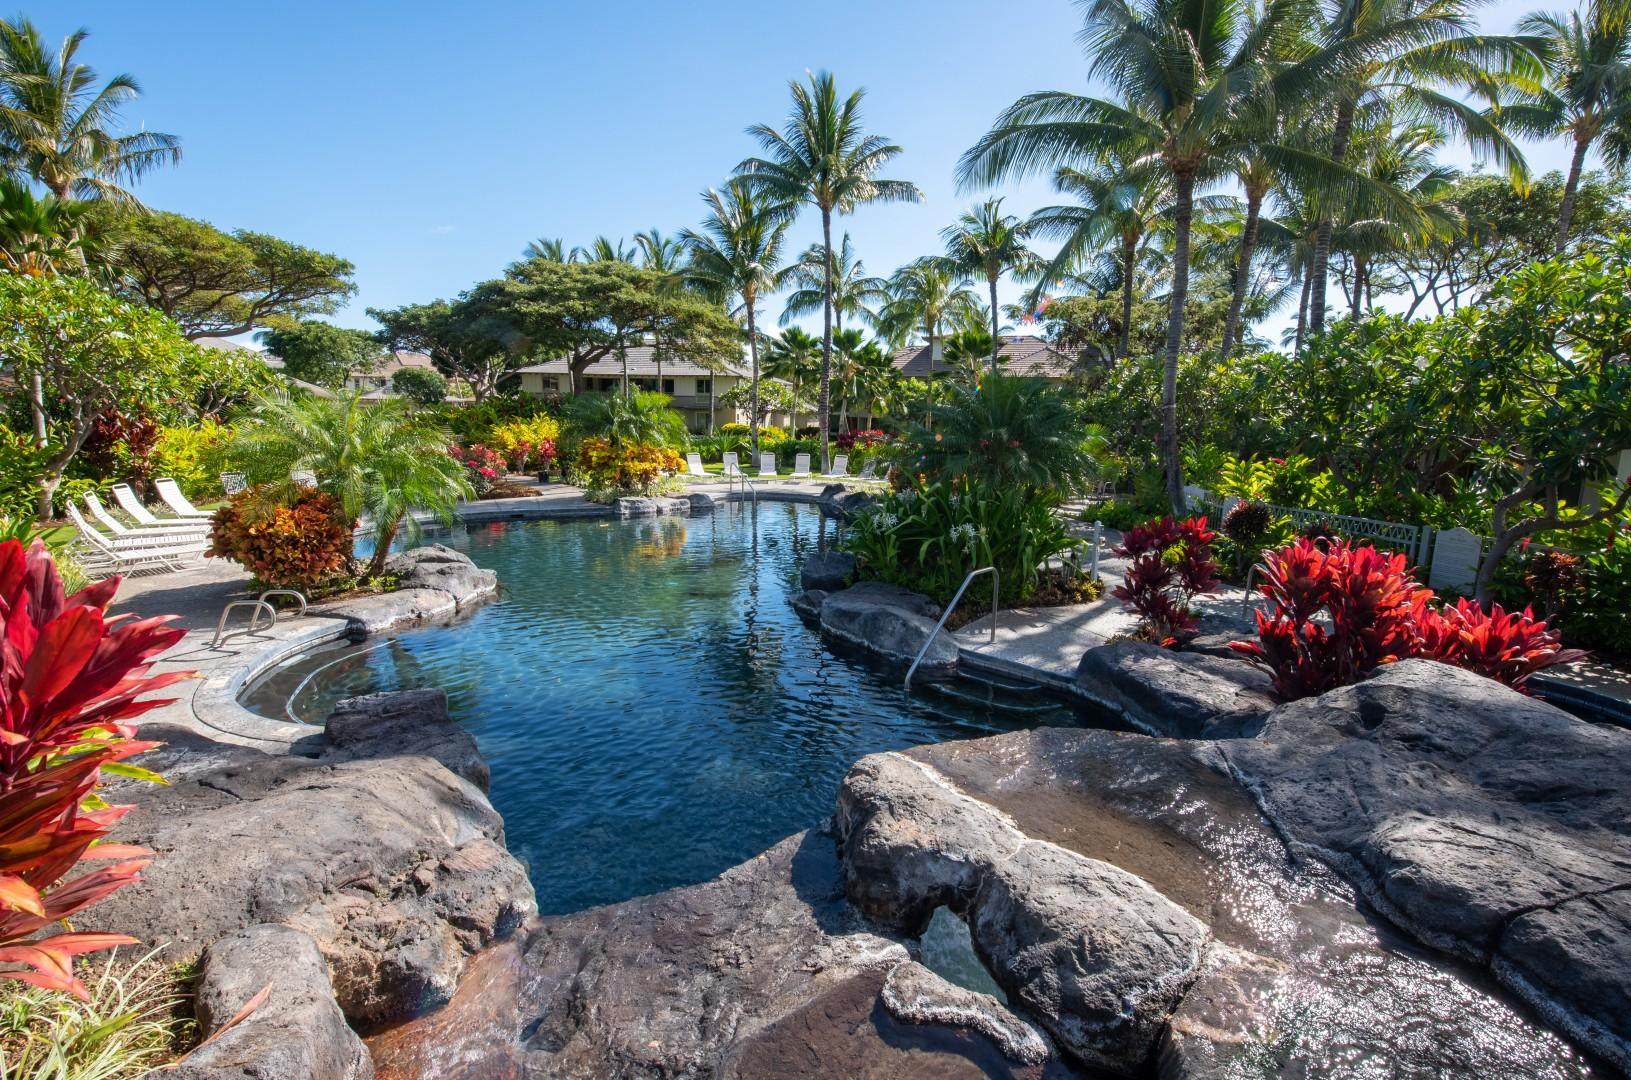 Spacious Swimming Pool w/ Waterfall, Surrounded by Lush Tropical Landscape